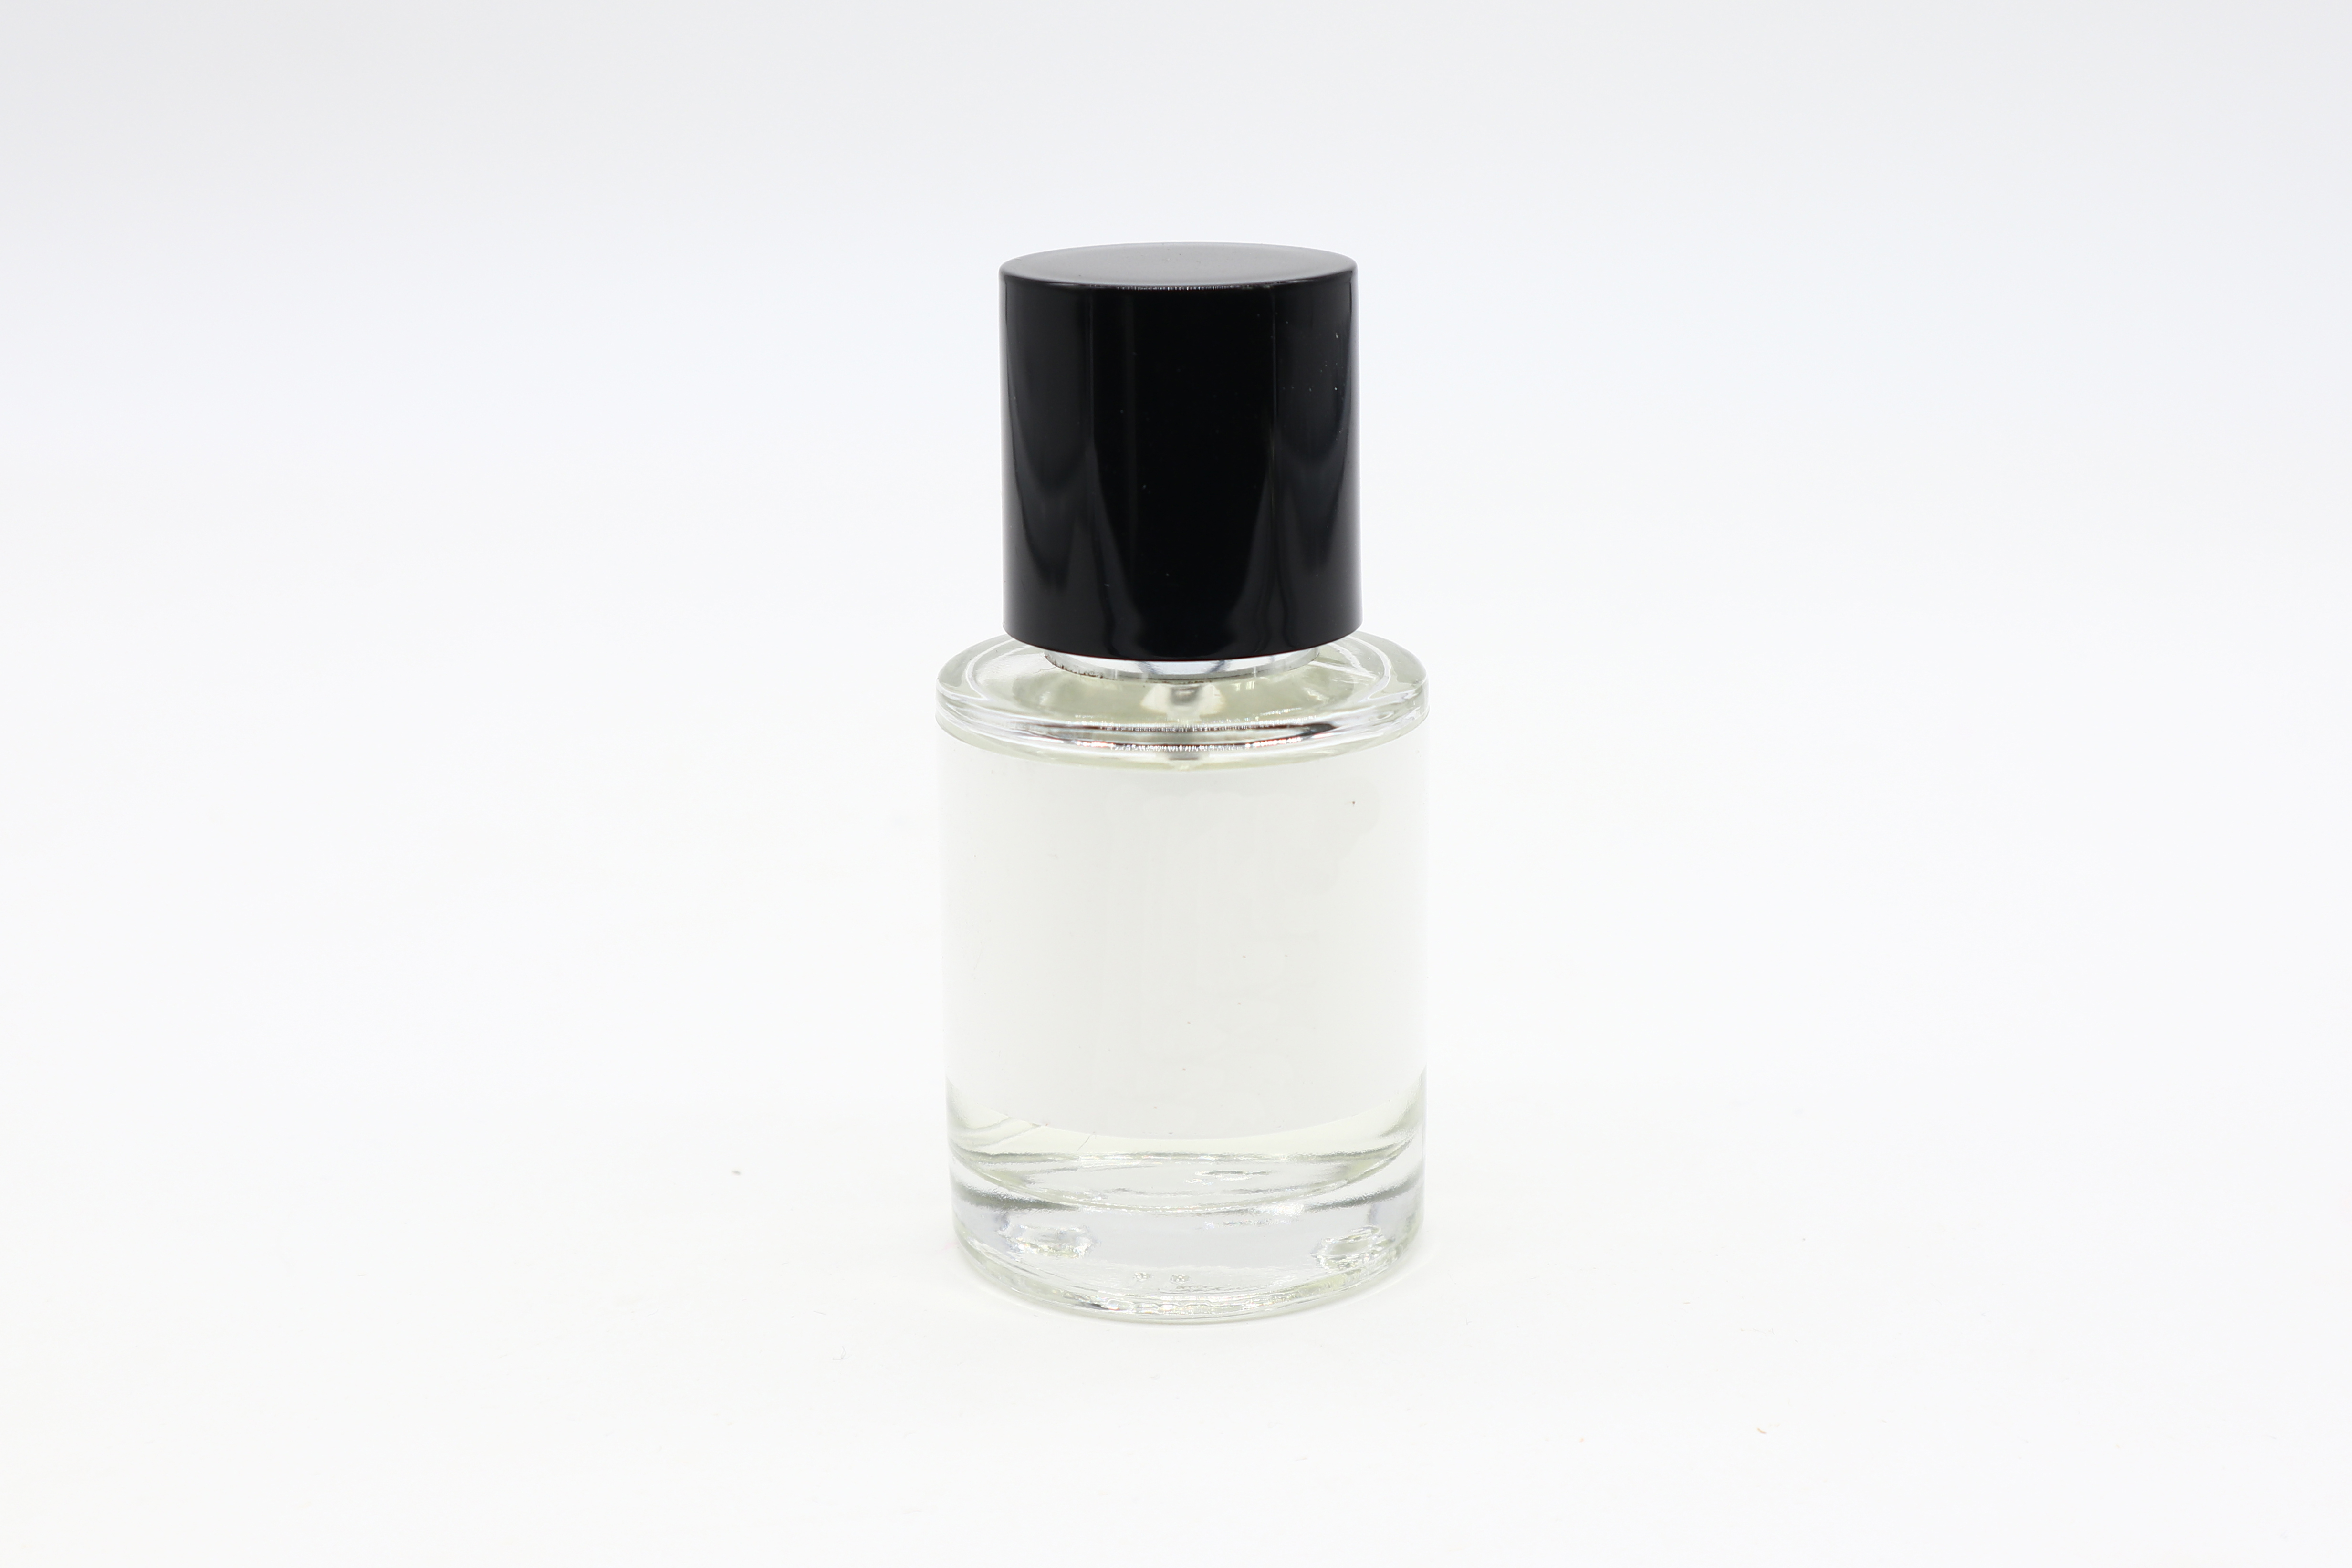 Giorgio Armani Emporio Armani Because It's You (тестер 30 ml)